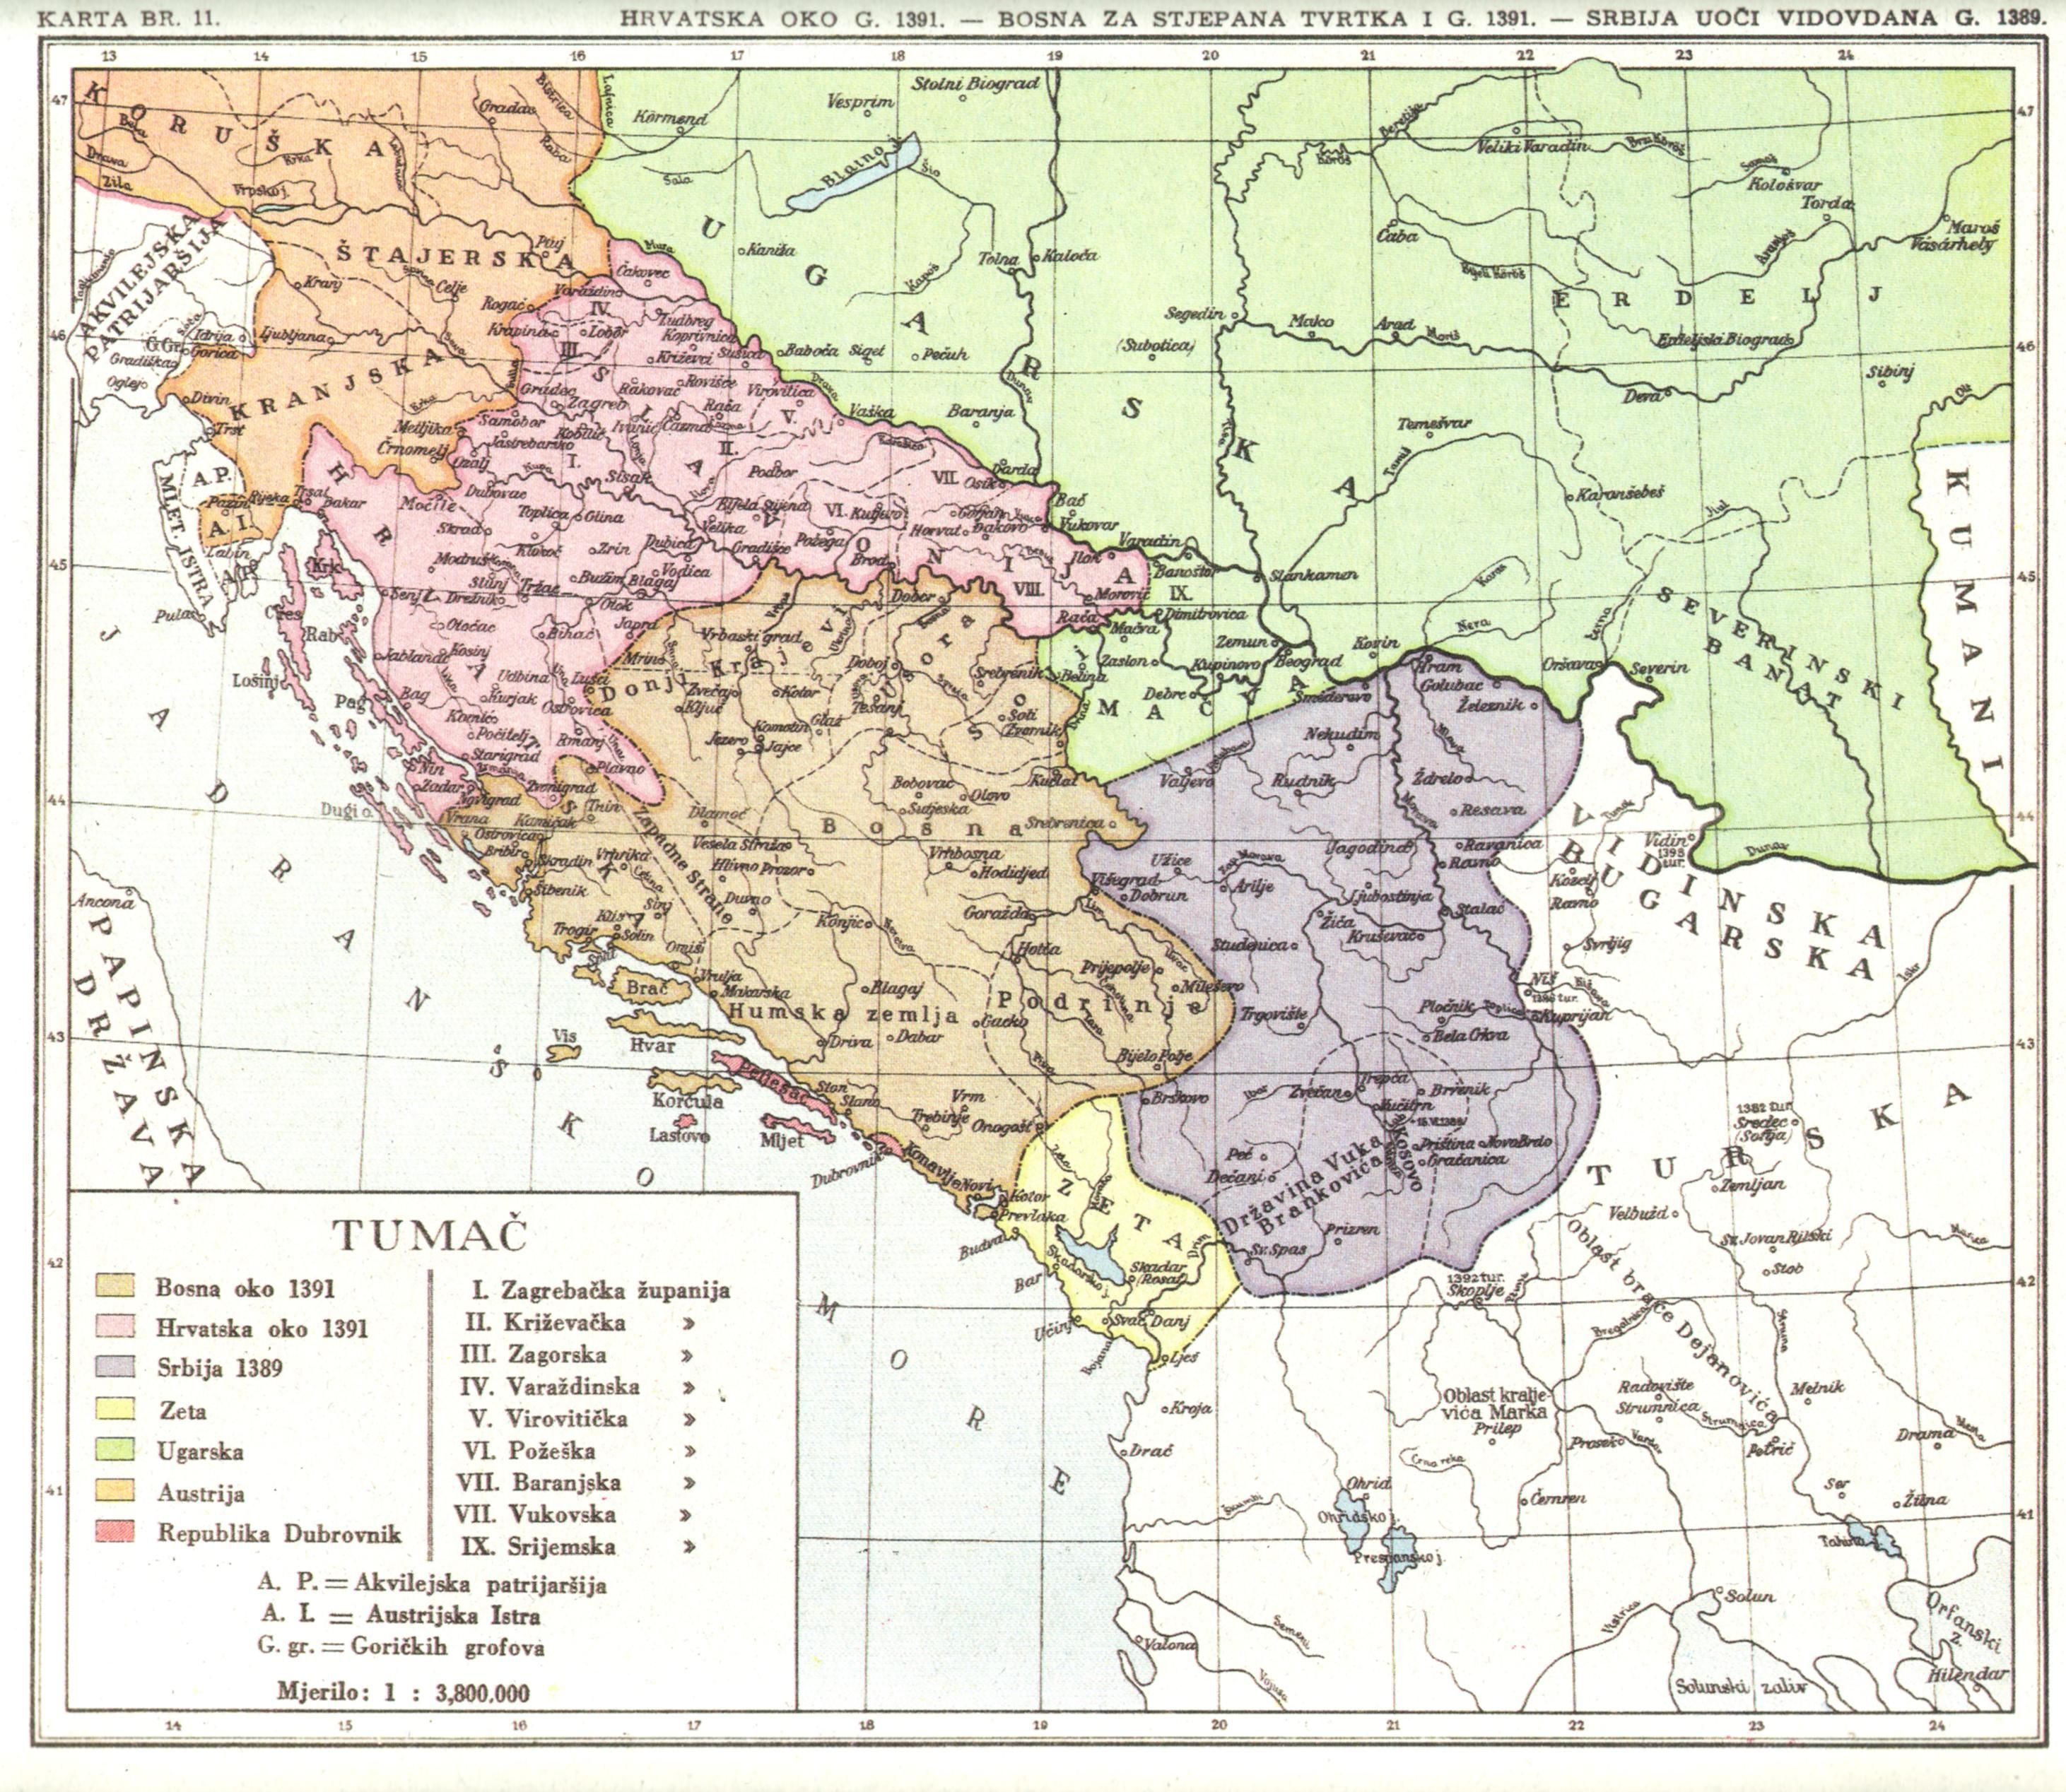 Hrvatska1391 Jpg 2923 2536 Vintage World Maps World History History